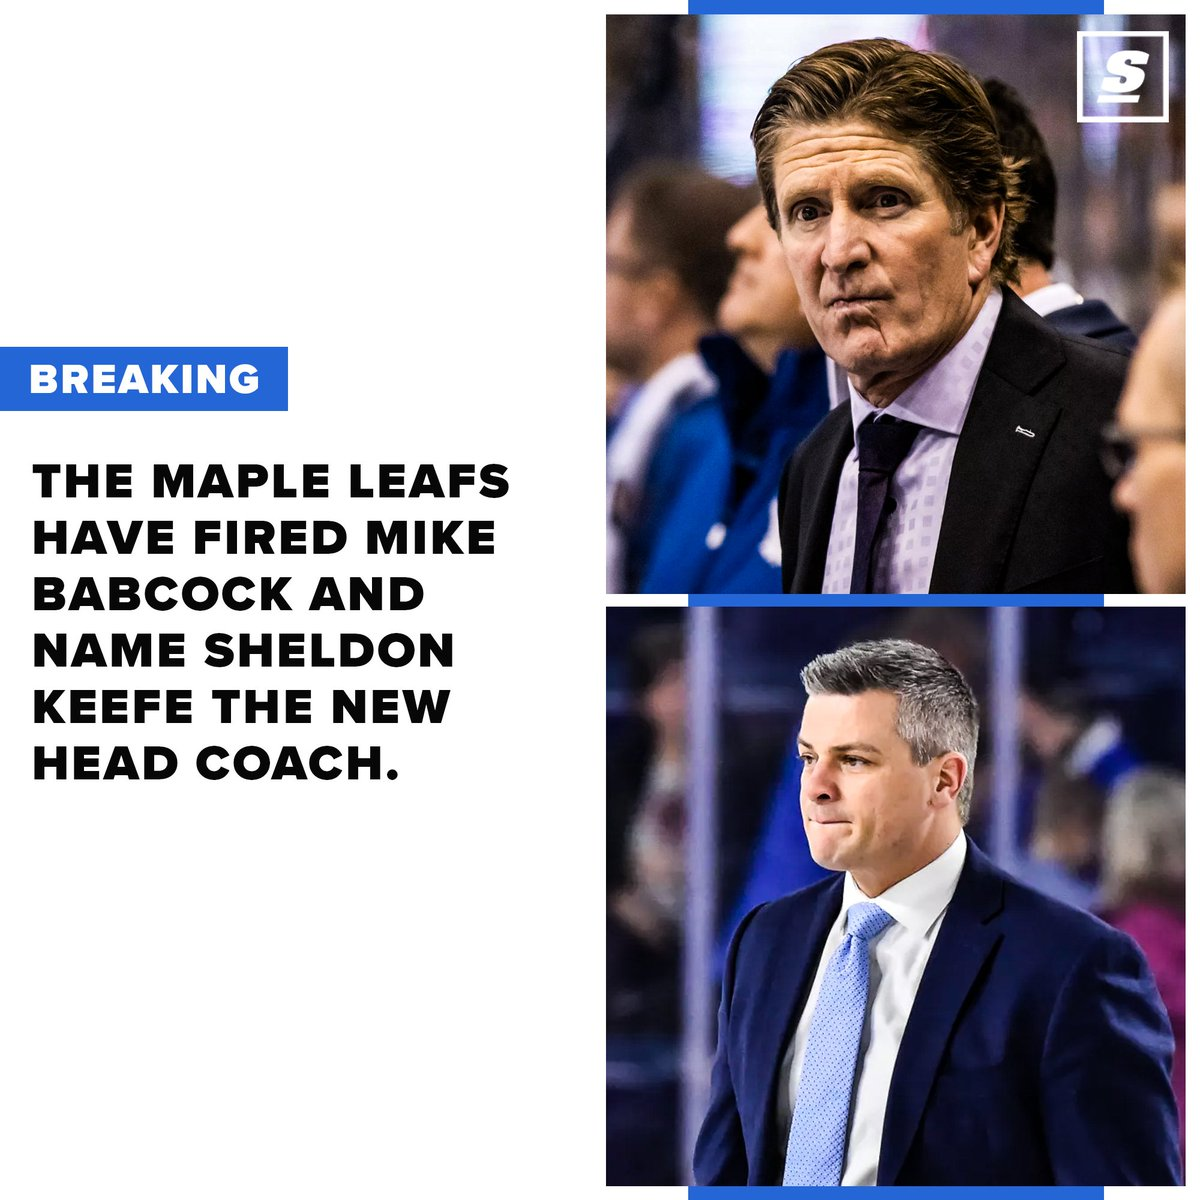 Babcock out. Keefe in. https://t.co/4D6XJQumrG https://t.co/QljdFy3Oq9